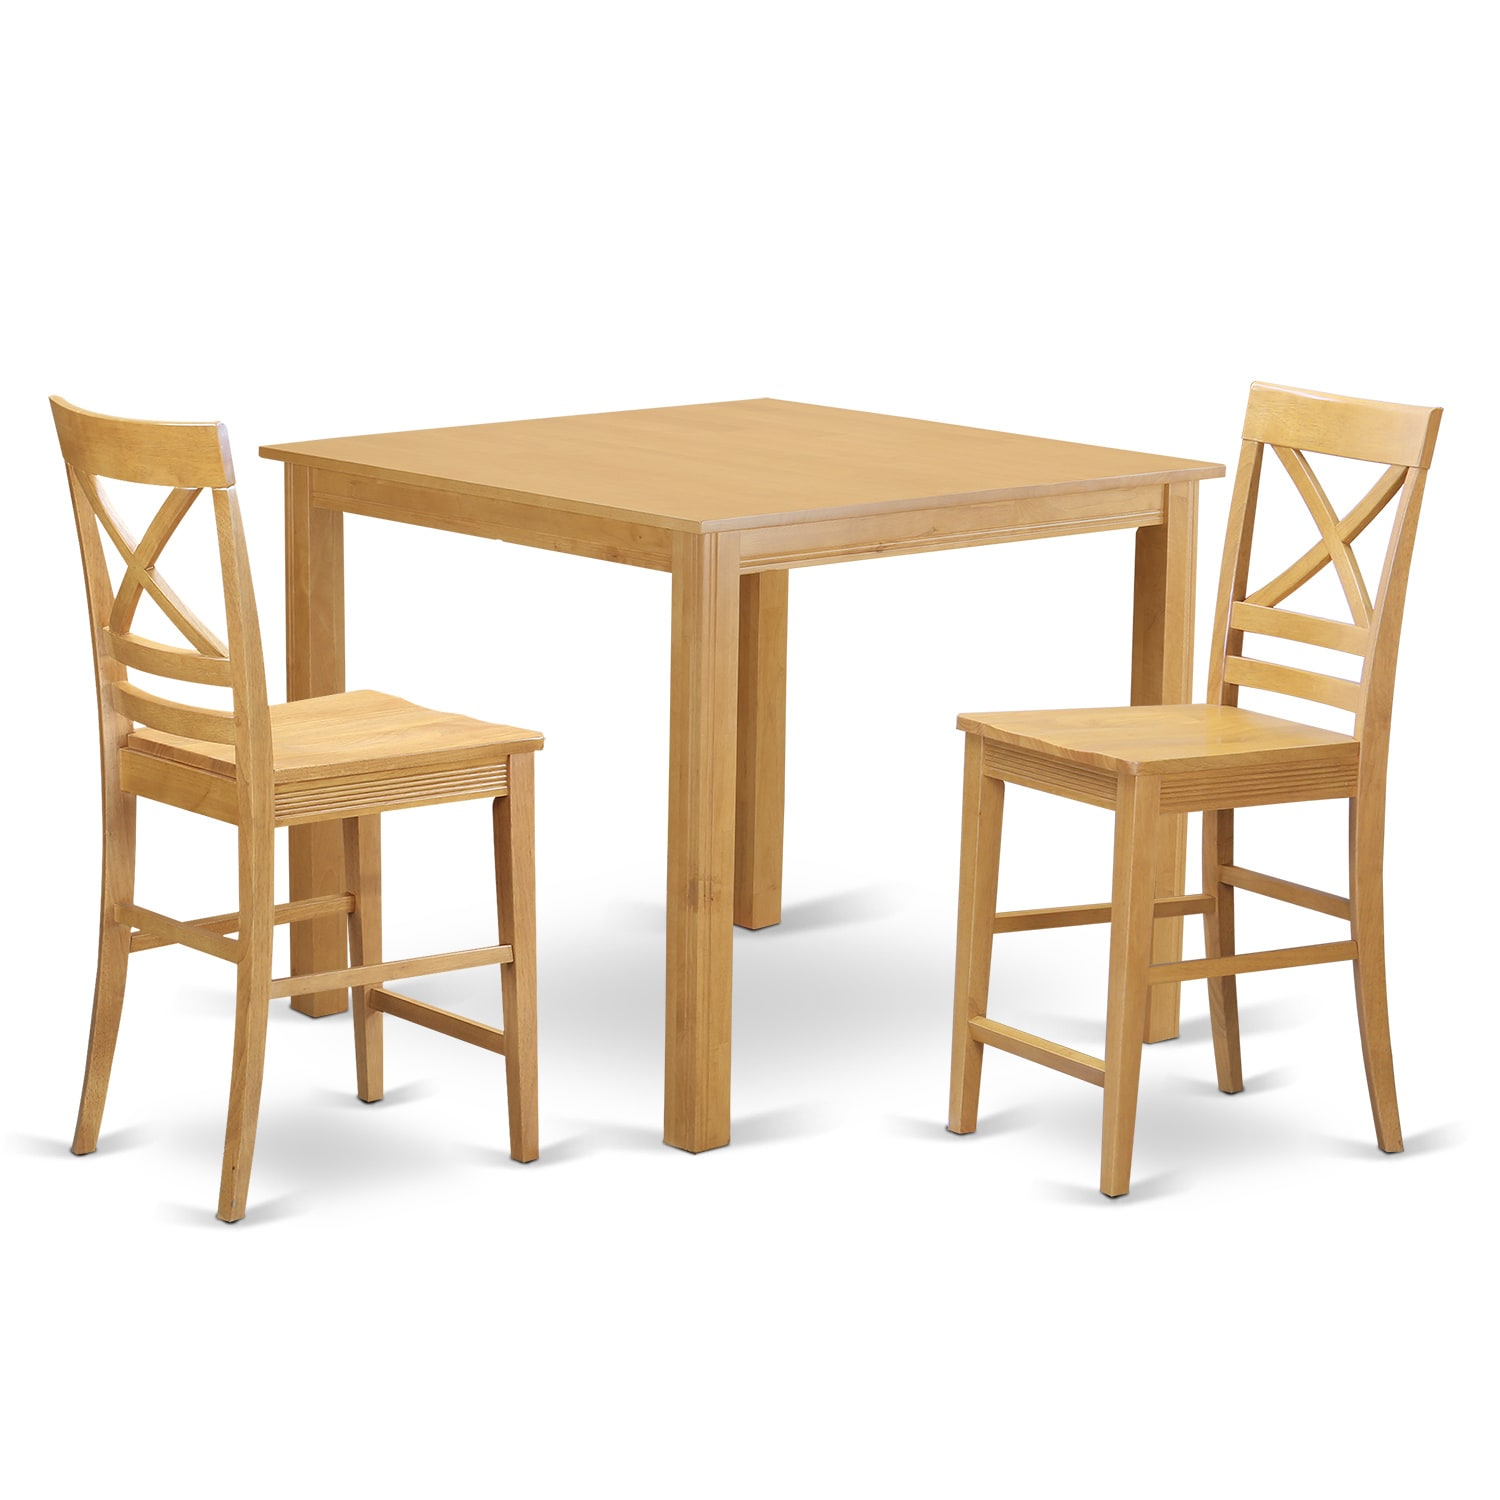 Oak Finish Rubberwood 3-piece Dining Room Pub Set with Co...